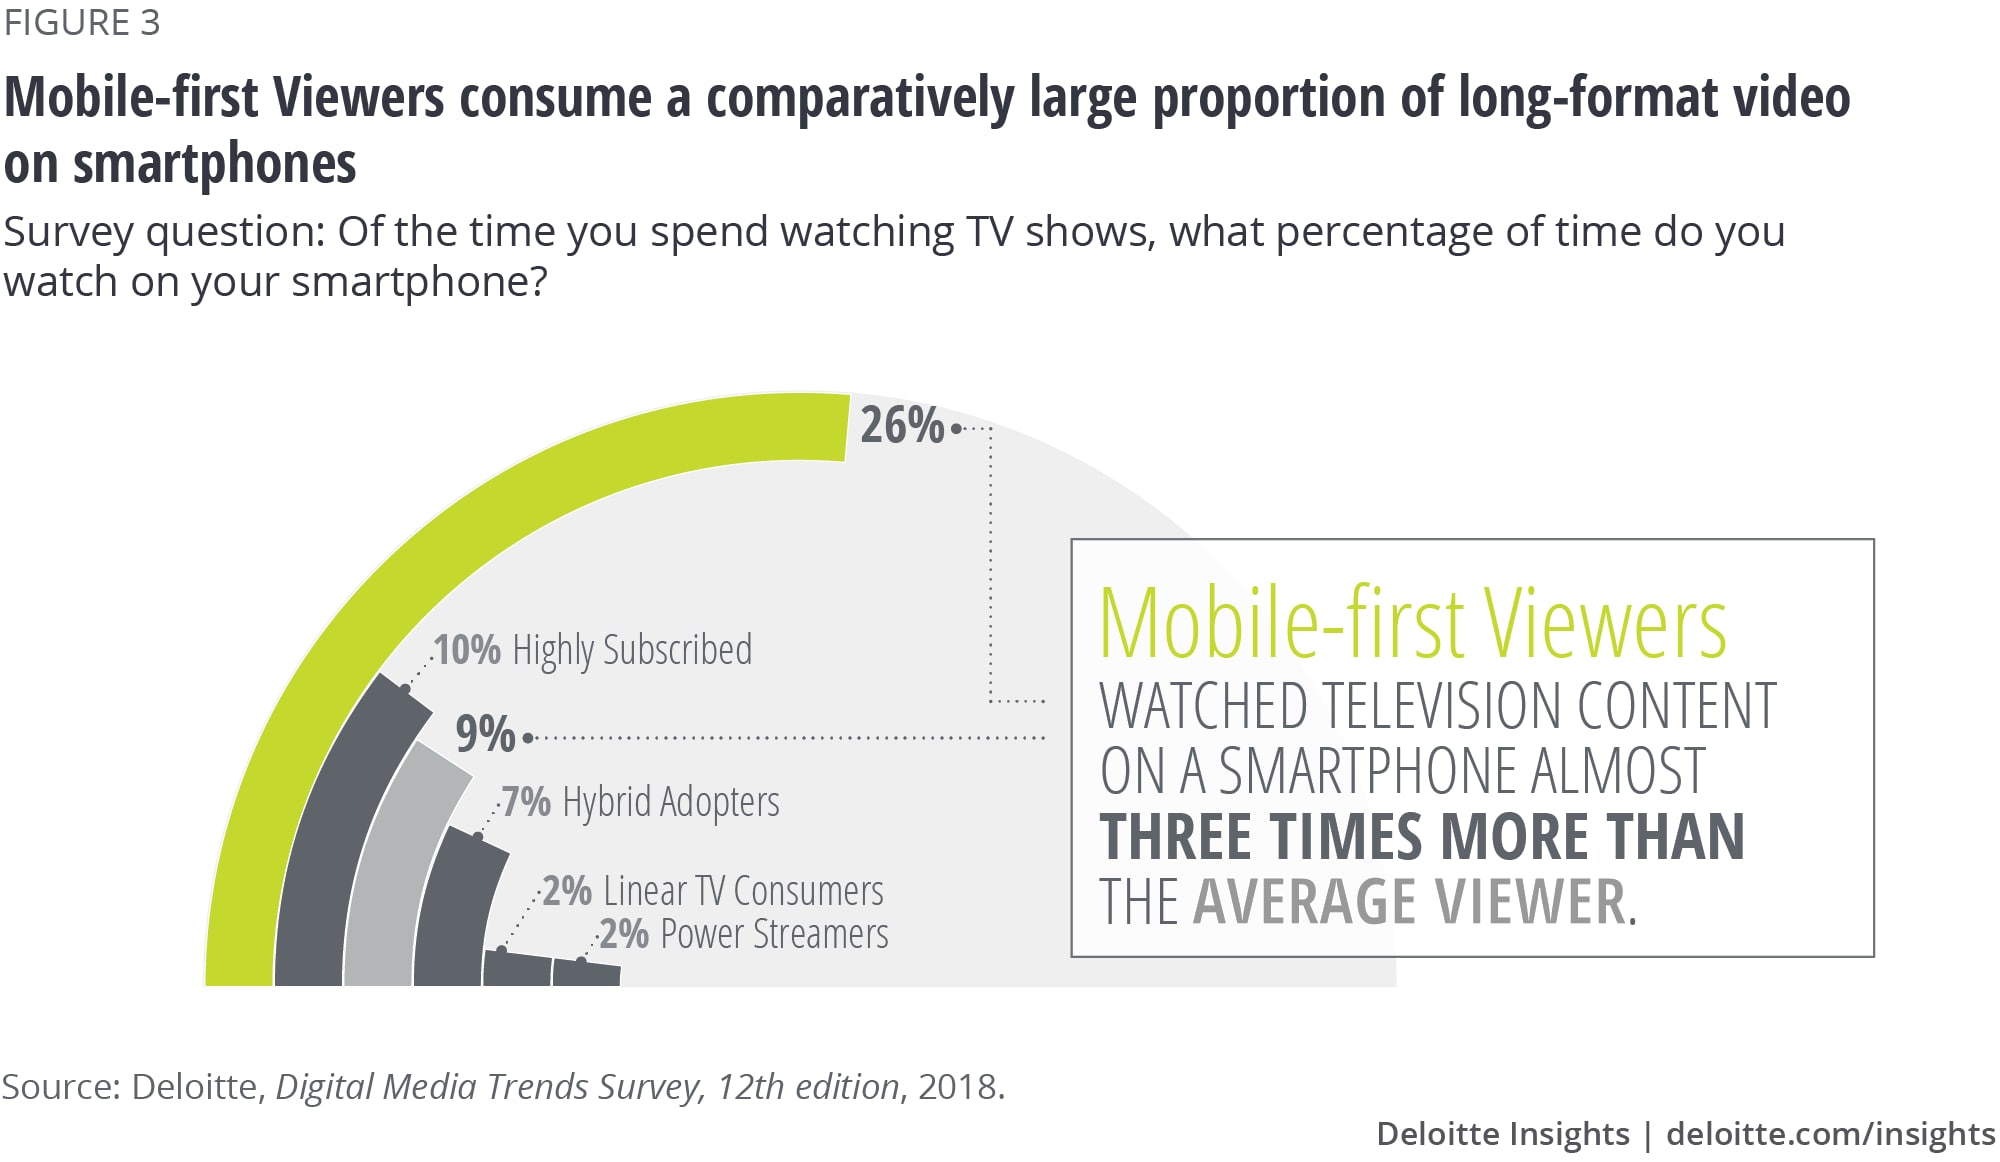 Media consumption behavior across generations | Deloitte